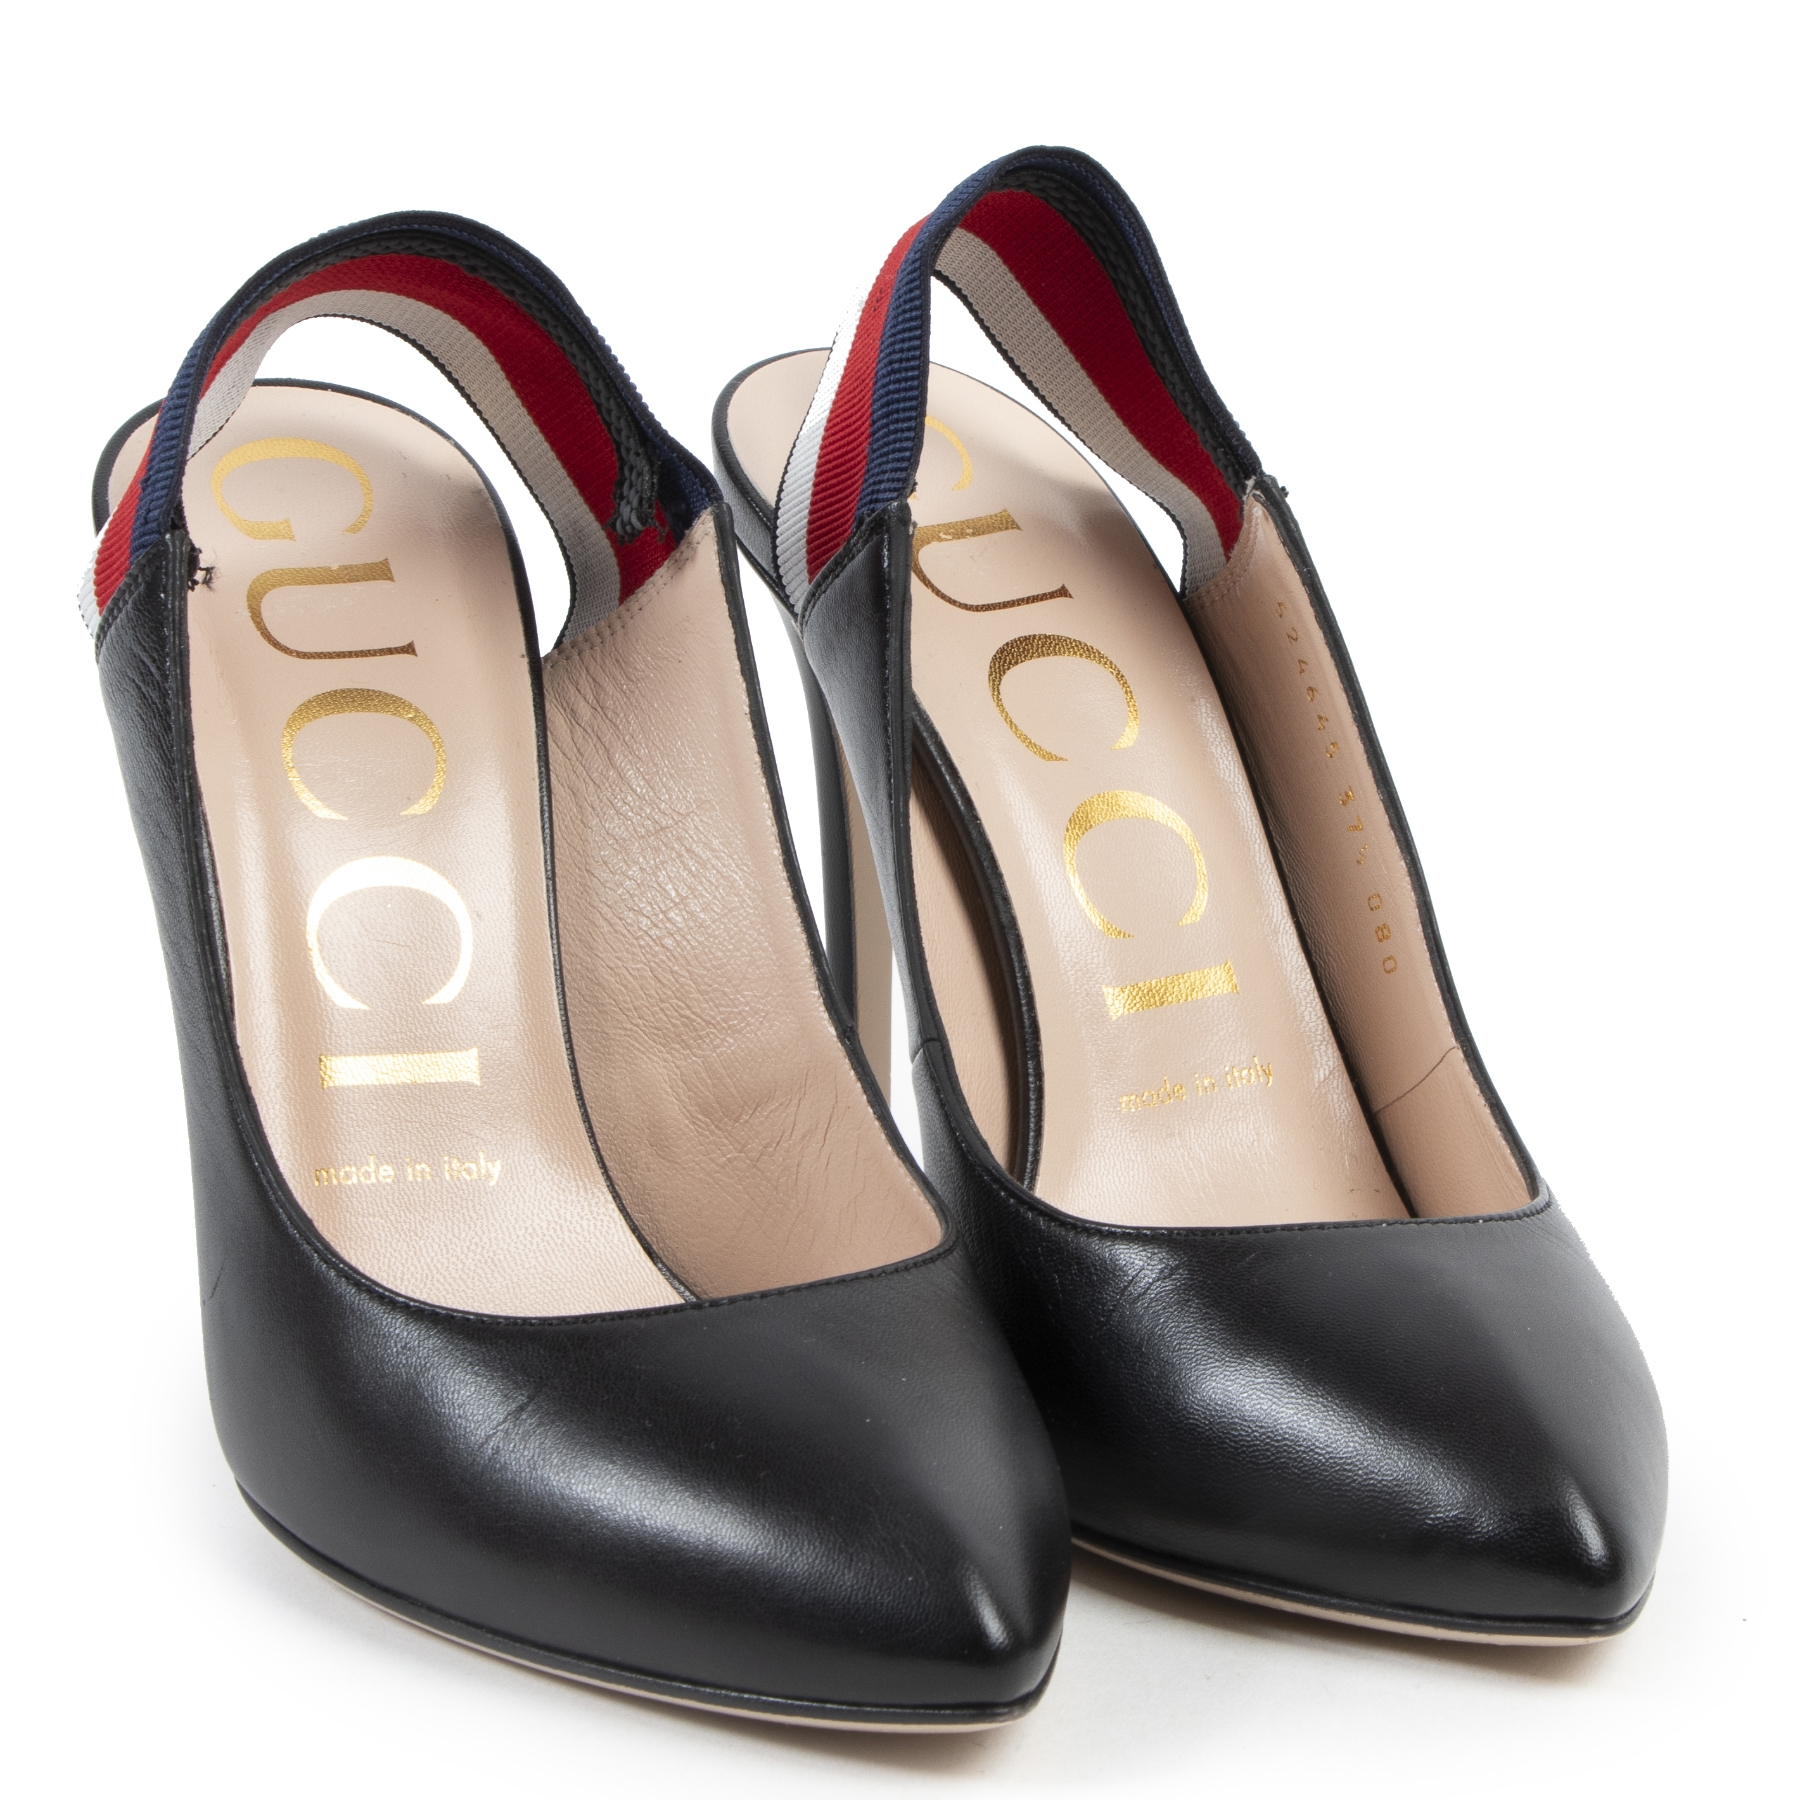 Authentic secondhand Gucci Black Web Slingback Pumps - size 37.5 designer shoes fashion luxury vintage webshop safe secure online shopping